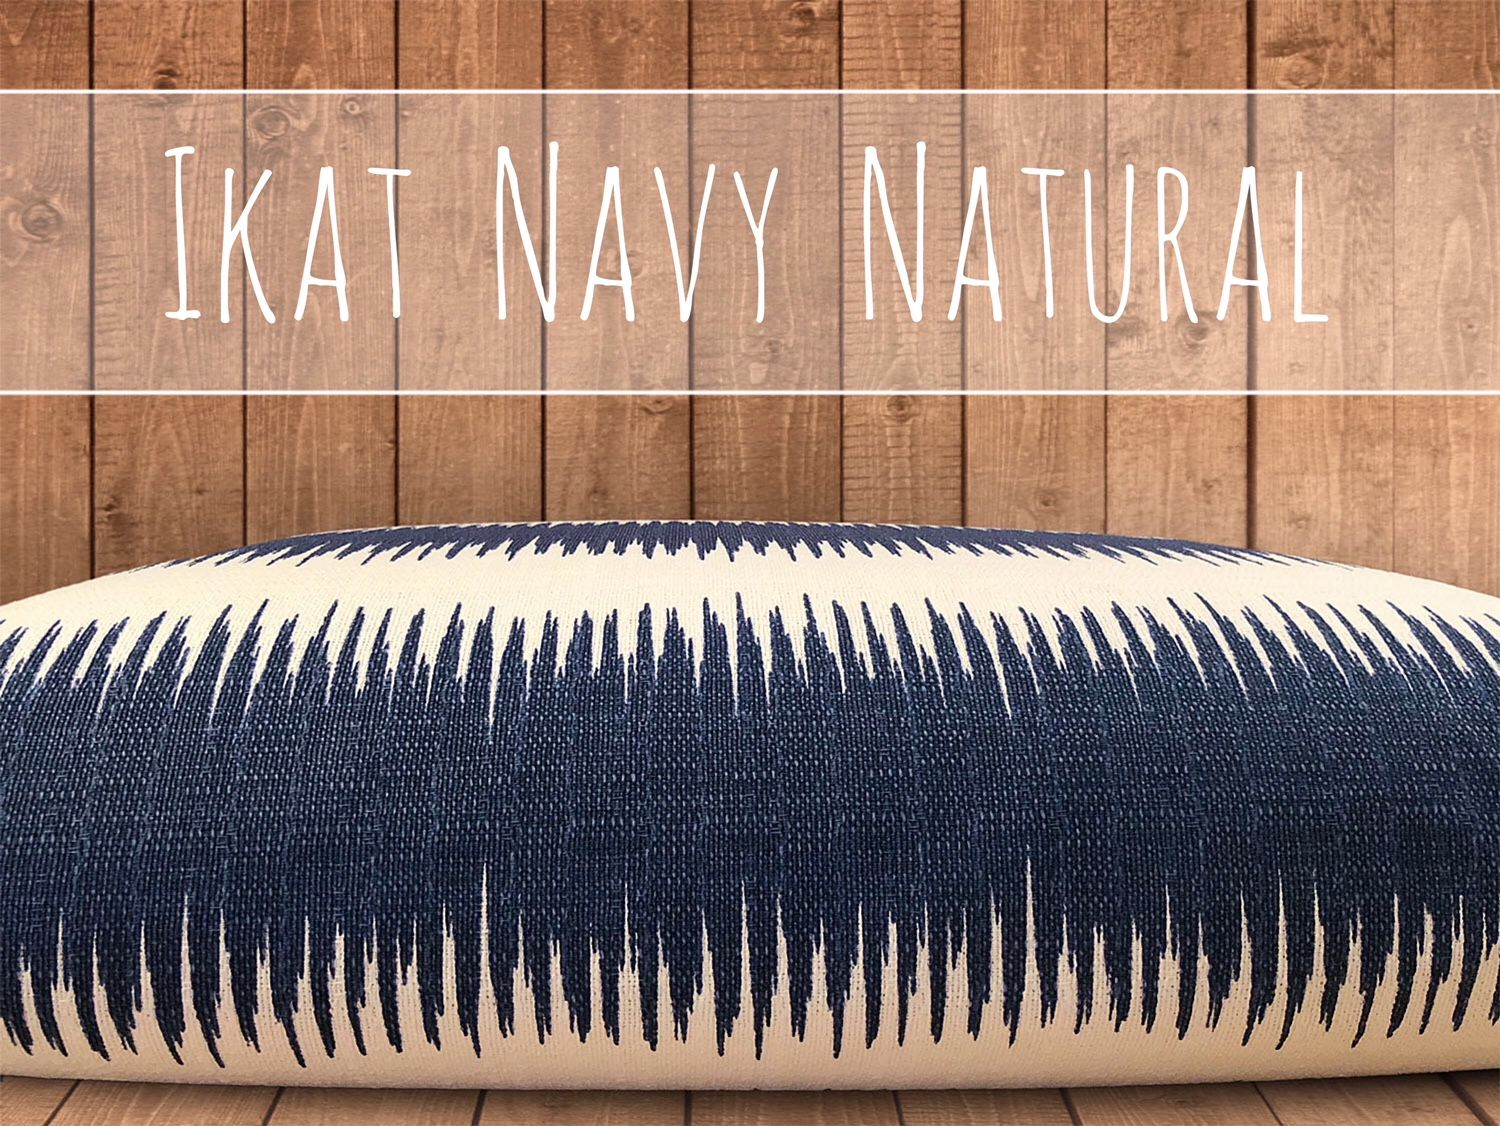 Ikat Dog Bed Cover